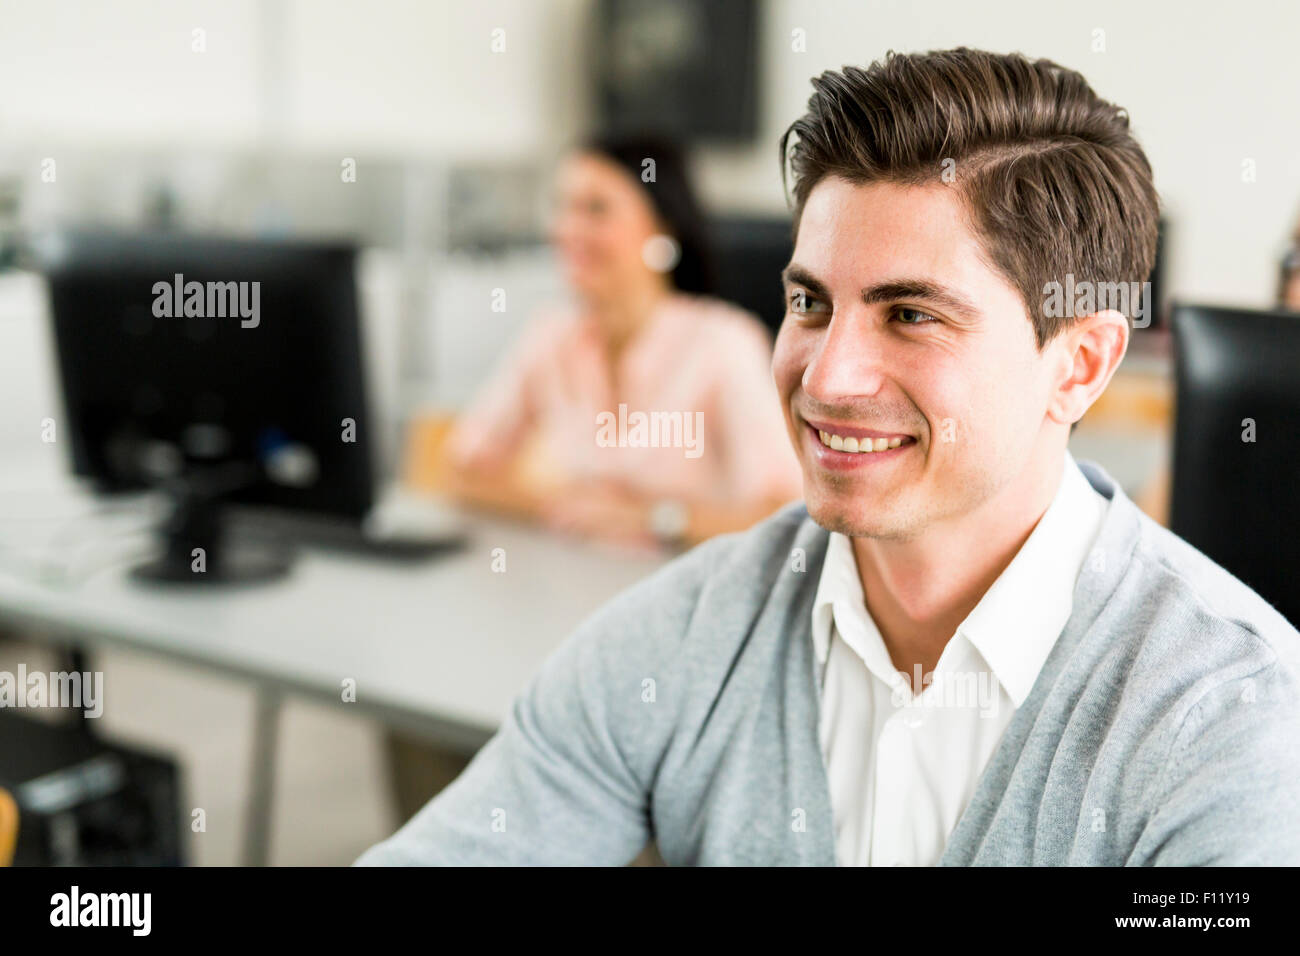 Young handsome man studying information technology in a classroom and smiling Stock Photo